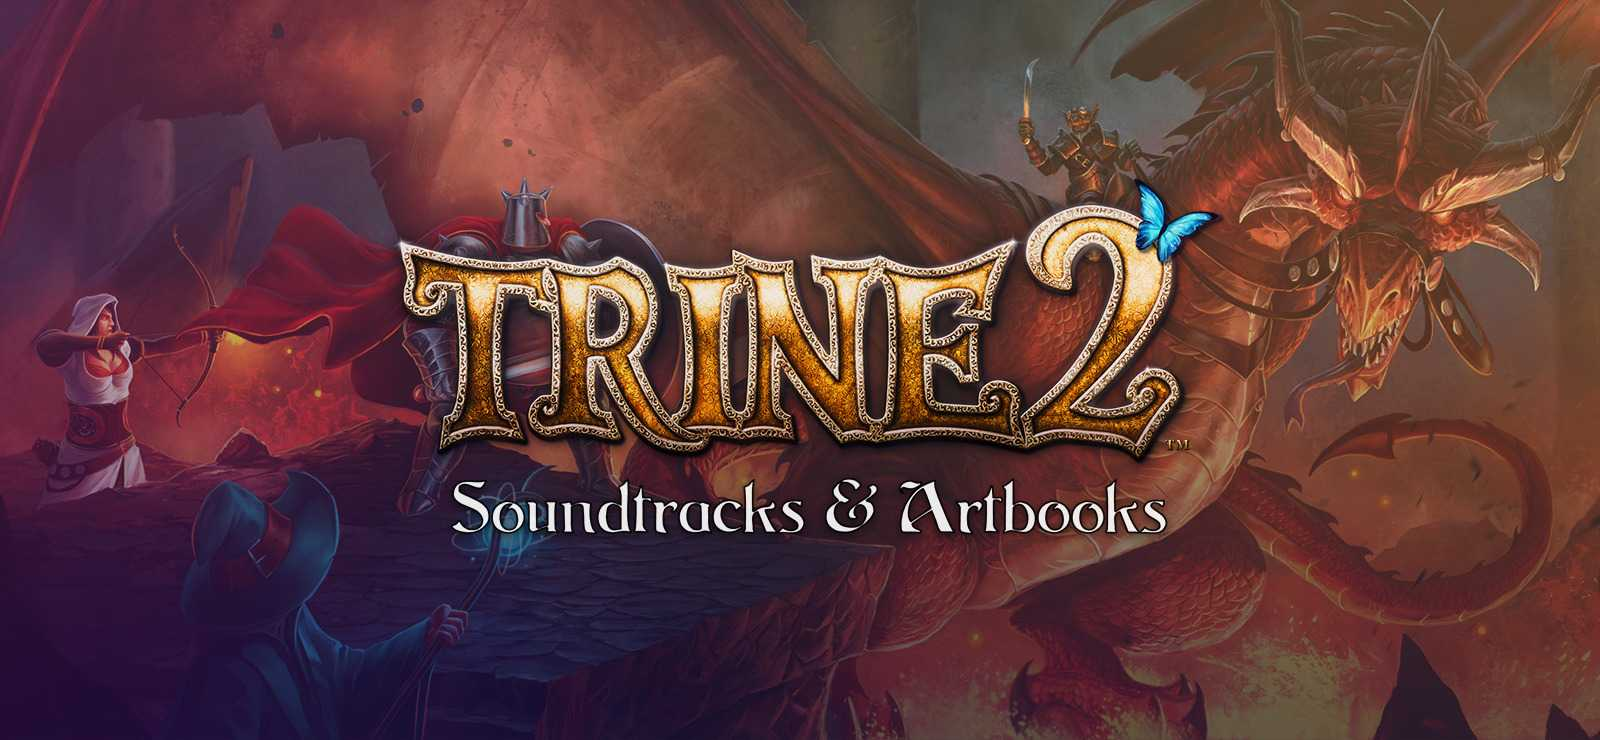 Trine 2: Soundtracks & Artbooks